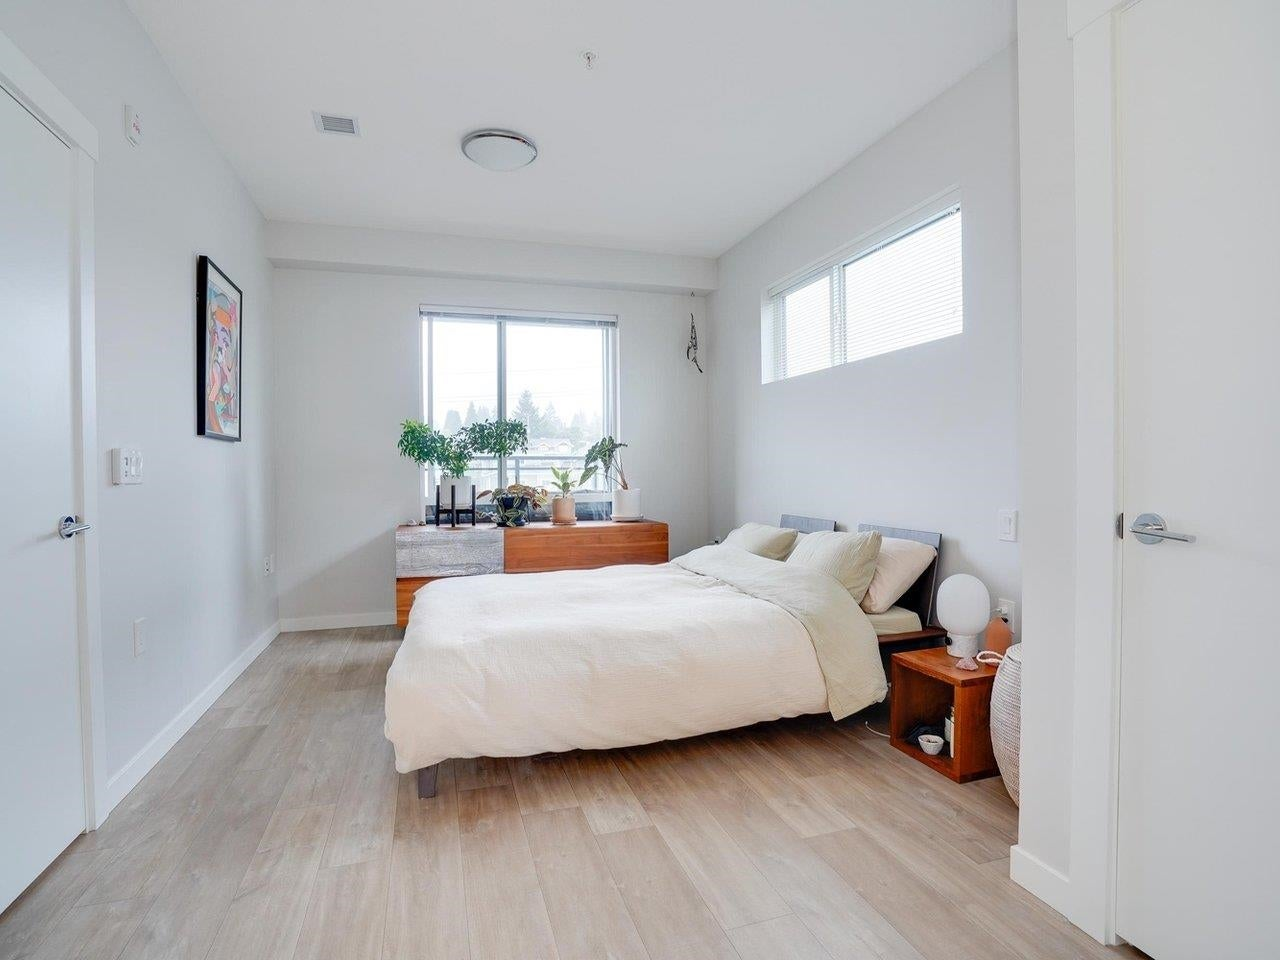 409 615 E 3RD STREET - Lower Lonsdale Apartment/Condo for sale, 2 Bedrooms (R2621616) - #12